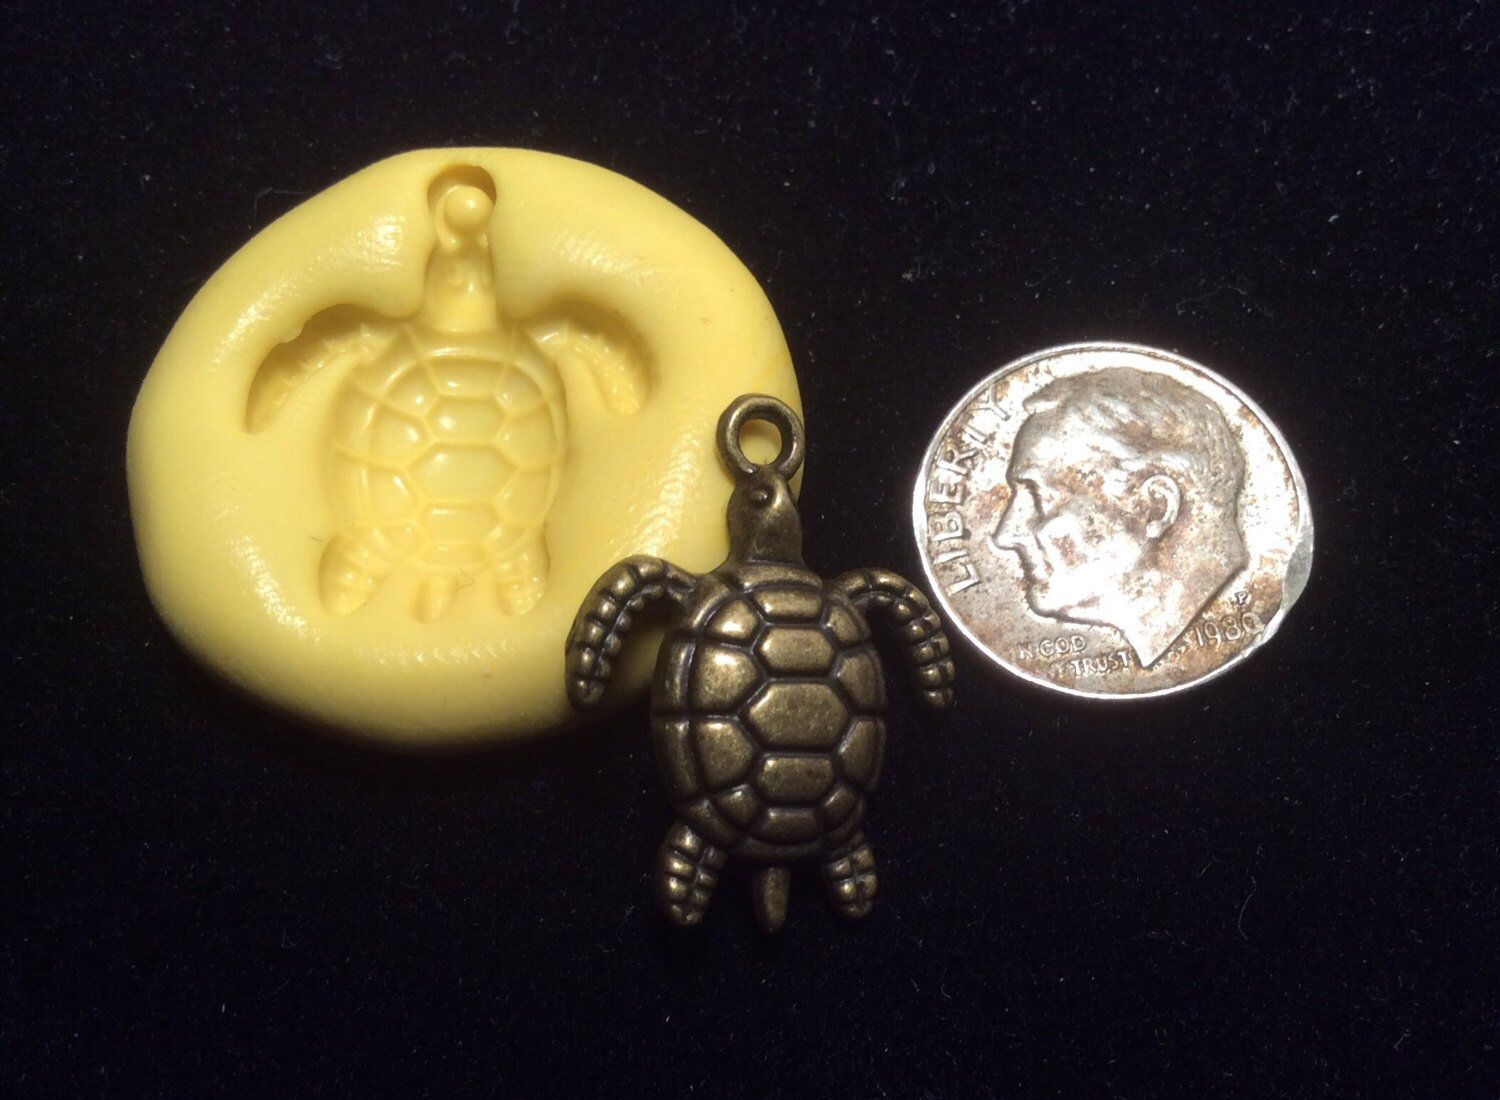 TURTLE tiny mold # 211 flexible silicone for soap candles cakes play doh jewelry mini minimolds food miniatures miniature doll accessories